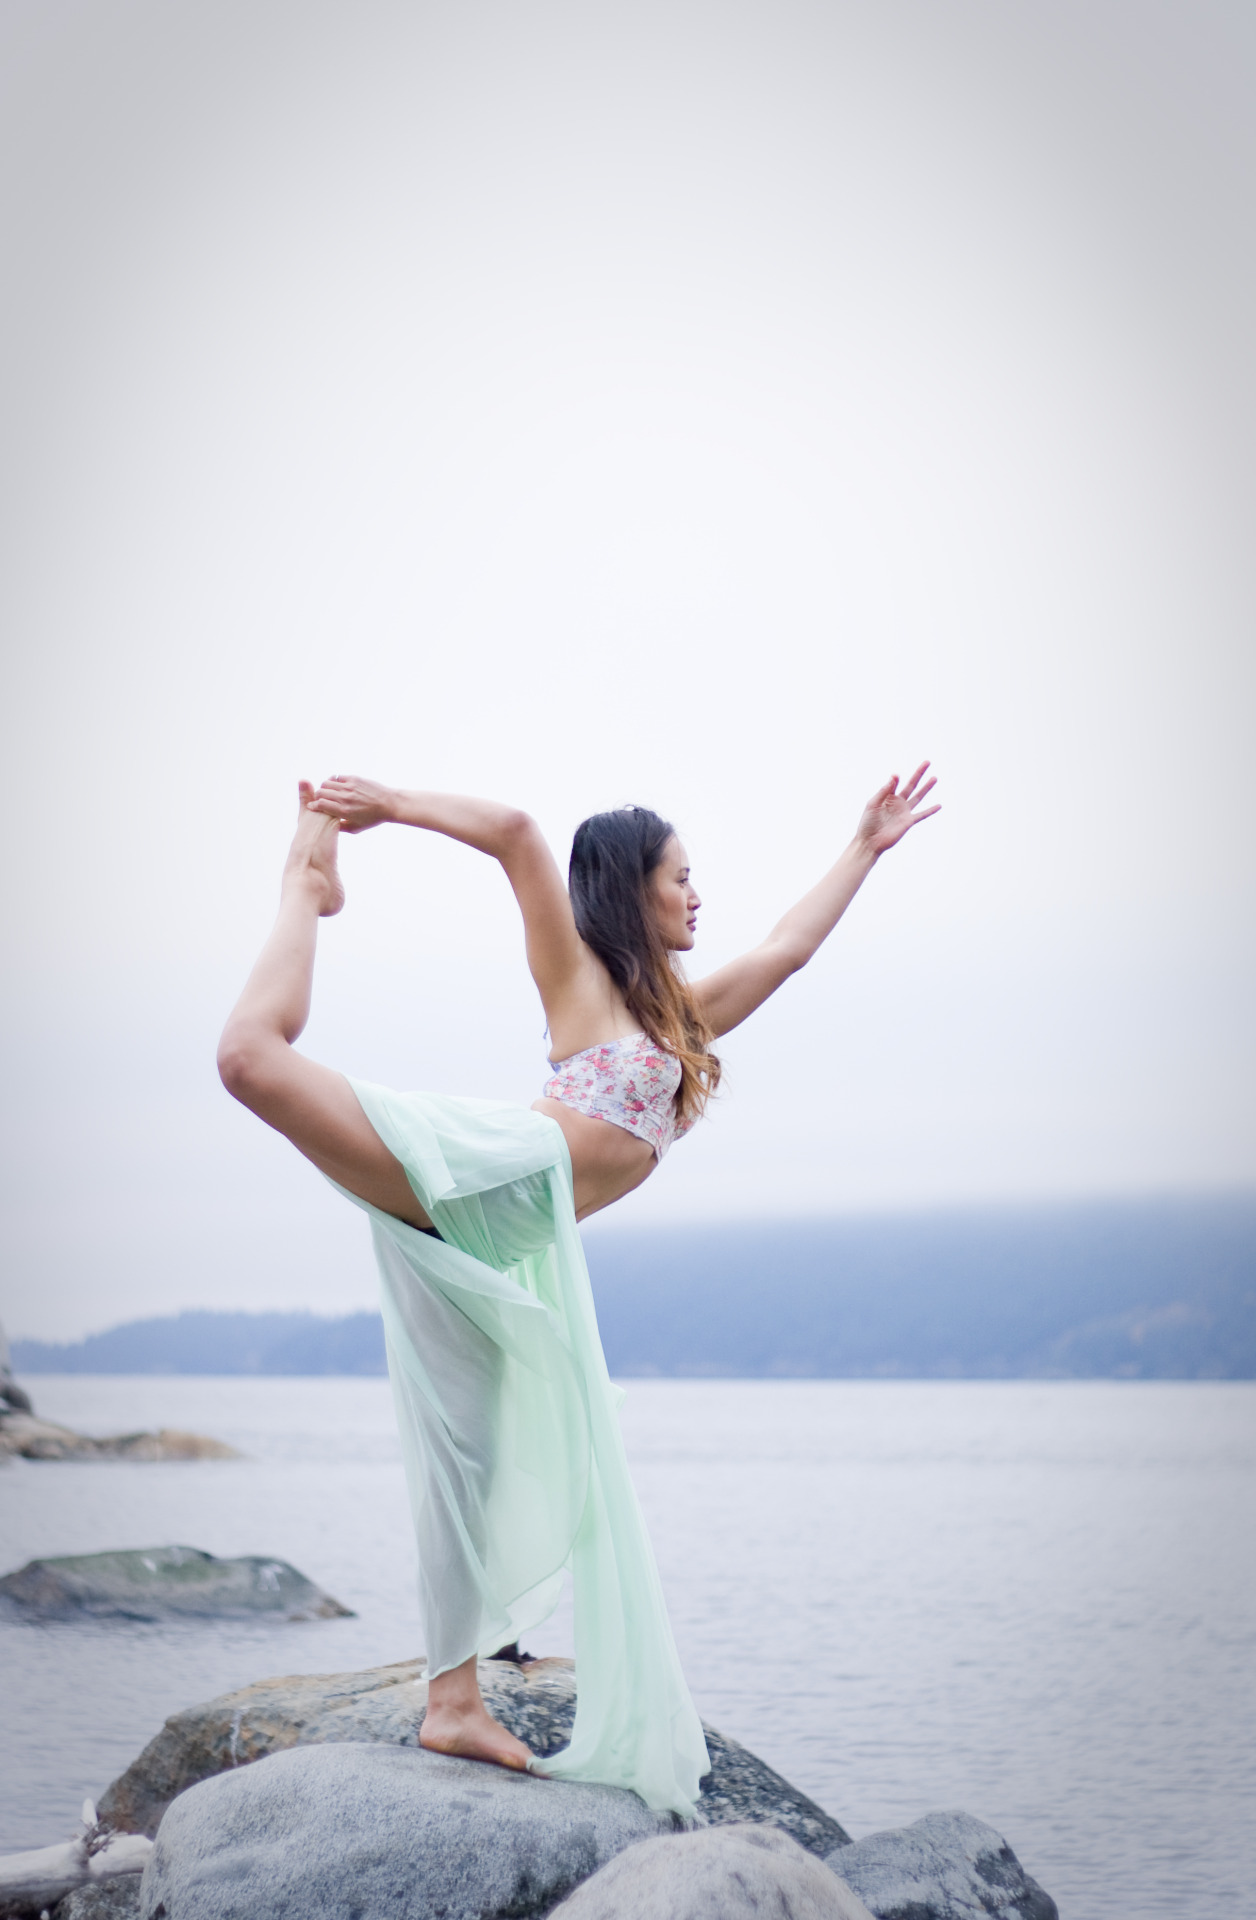 Another from the talented   Katie Courson Photography           Whytecliff Park - West Vancouver, British Columbia    Facebook.com/CamLeeYoga